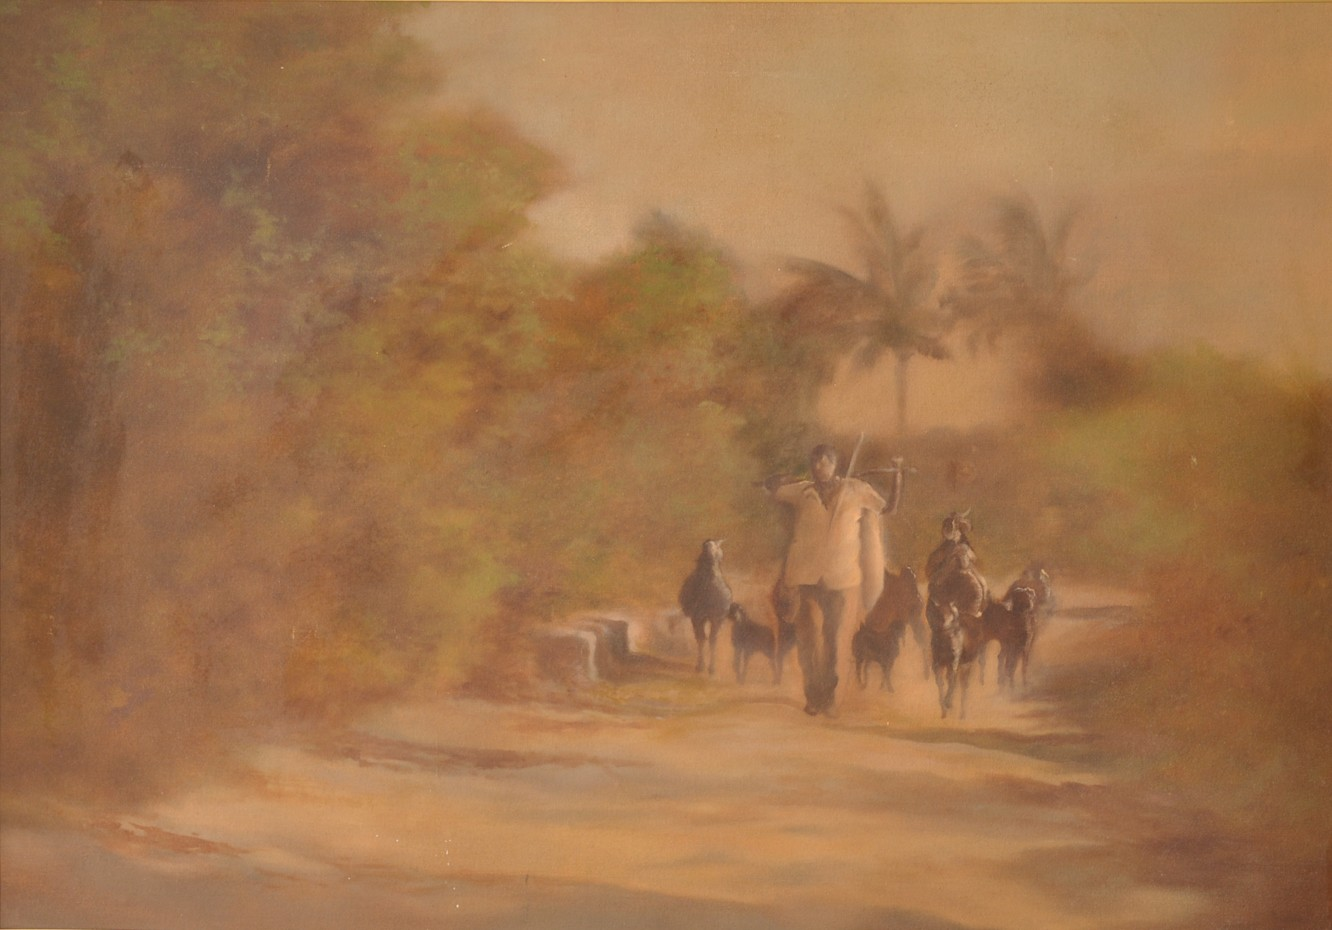 d-exhibition-jigars-kutch-in-evening-light